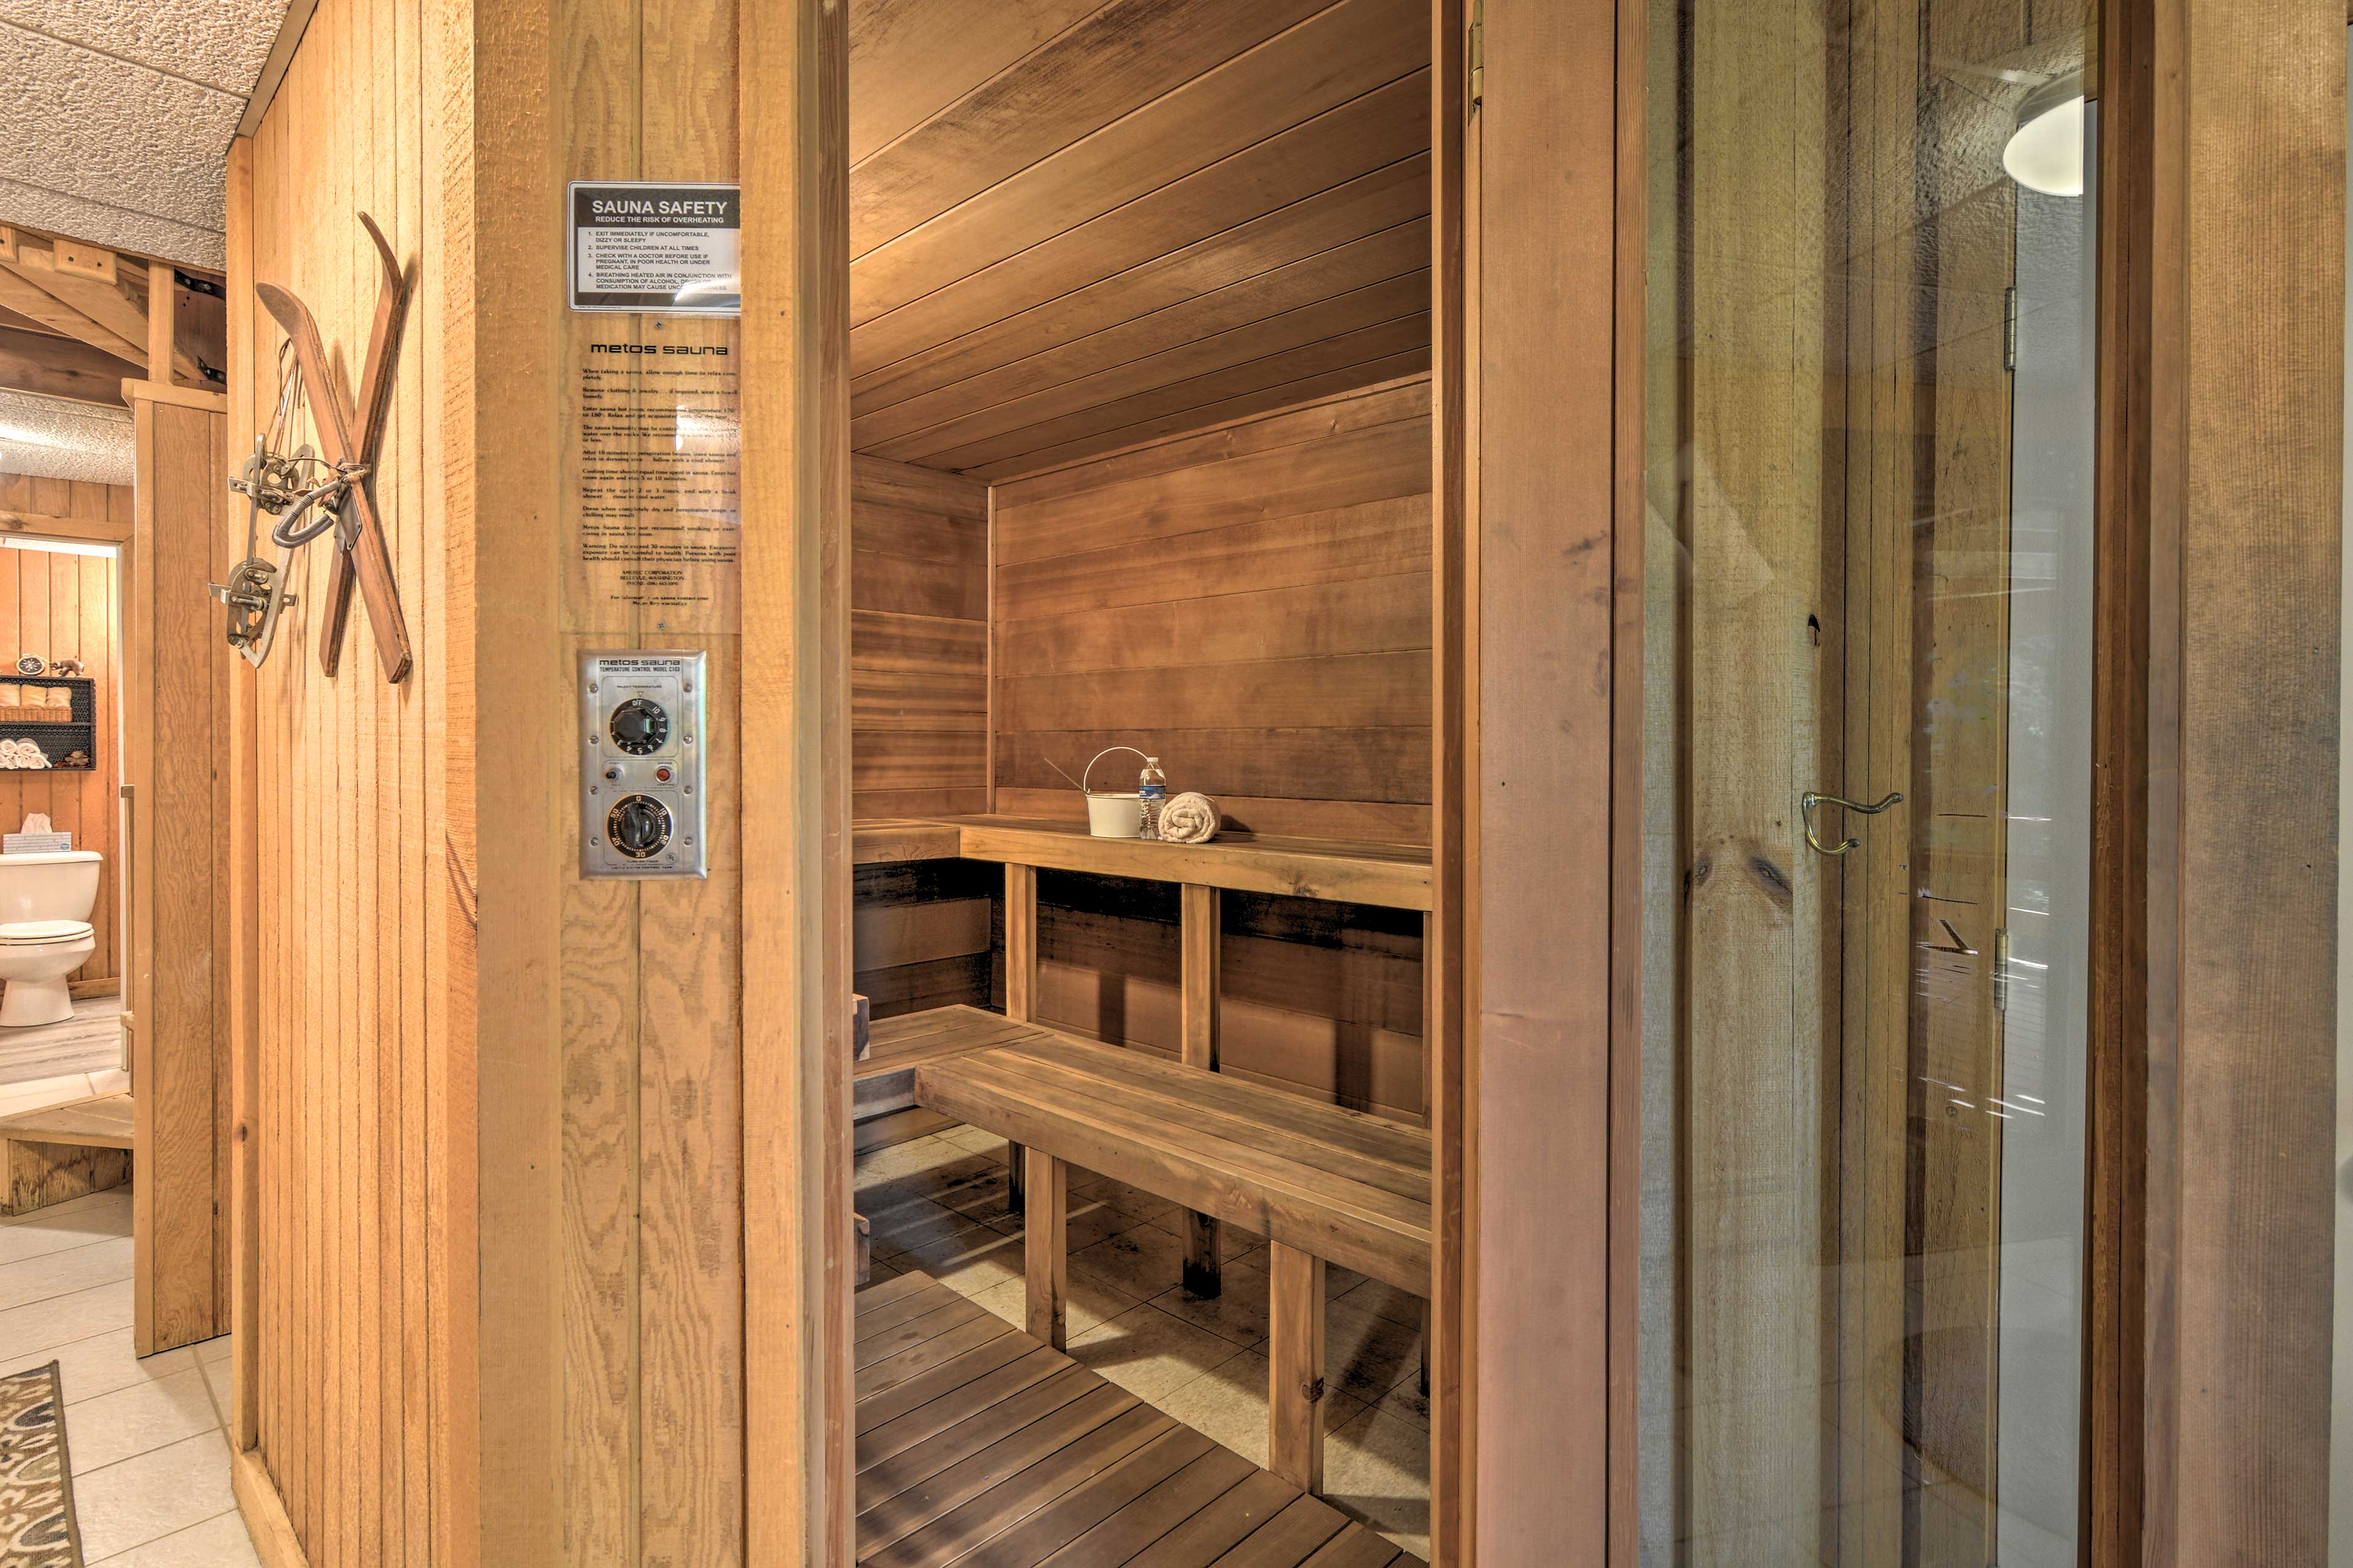 Soothe sore muscles in the sauna.